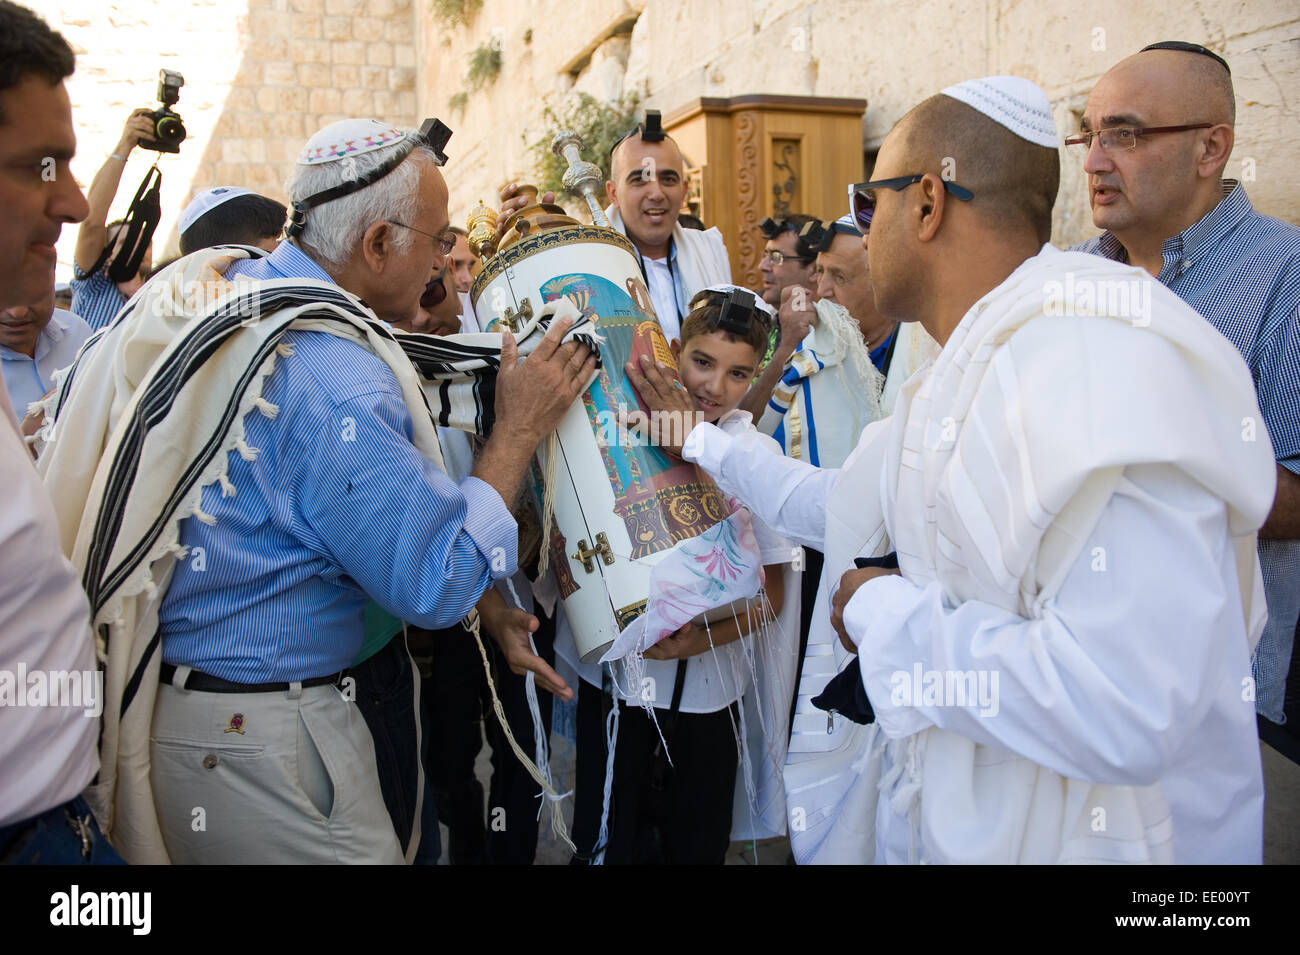 Bar Mitzvah ritual at the Wailing wall in Jerusalem. A 13 years old boy who has become a Bar Mitzvah - Stock Image